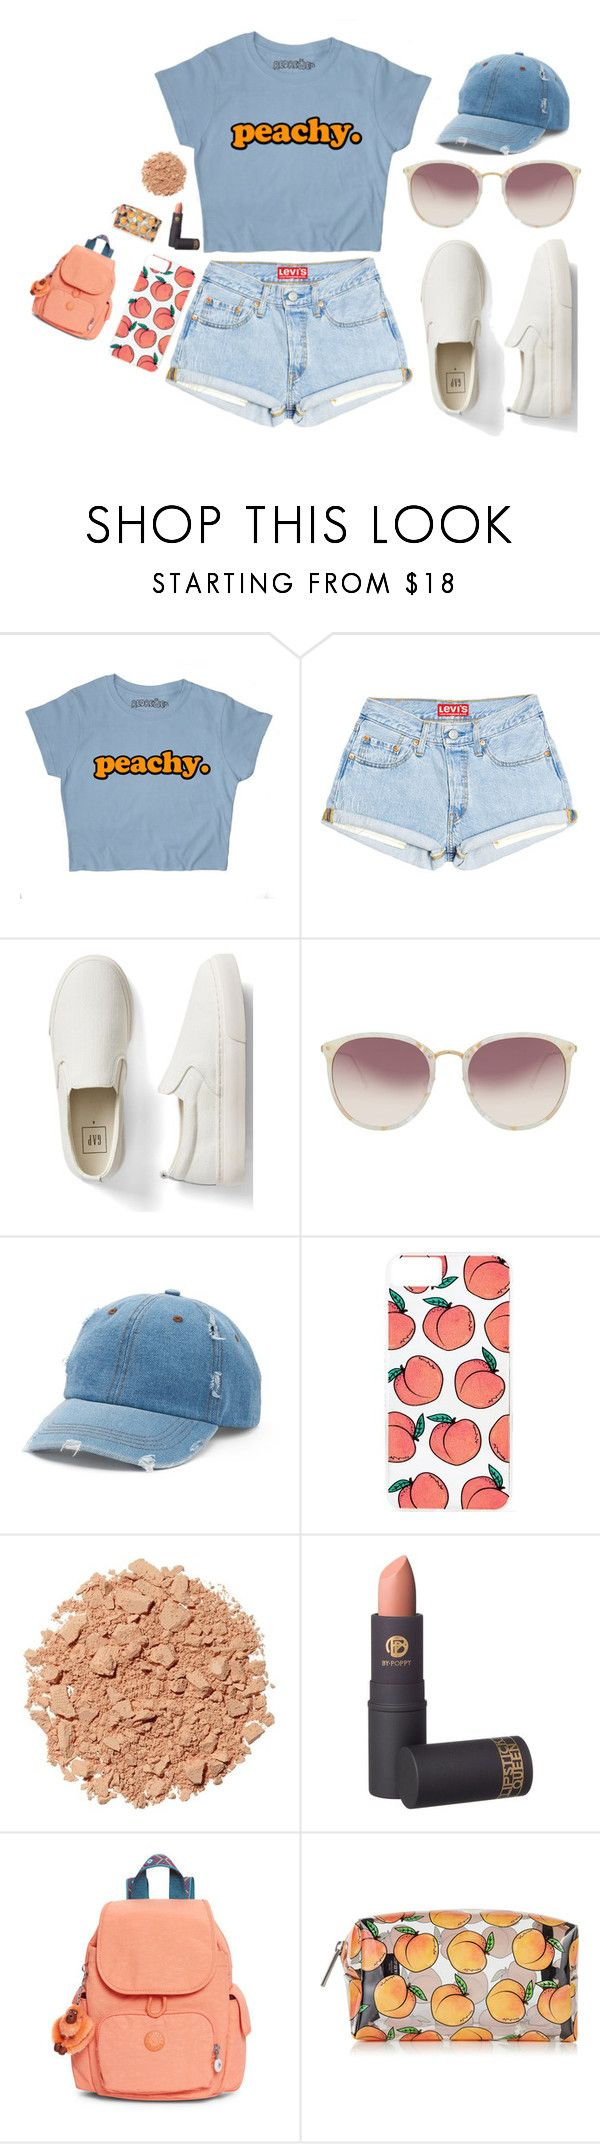 """Peachy 🍑"" by dark-jewel ❤ liked on Polyvore featuring Gap, Linda Farrow, Mudd, Skinnydip, Illamasqua, Lipstick Queen and Kipling"